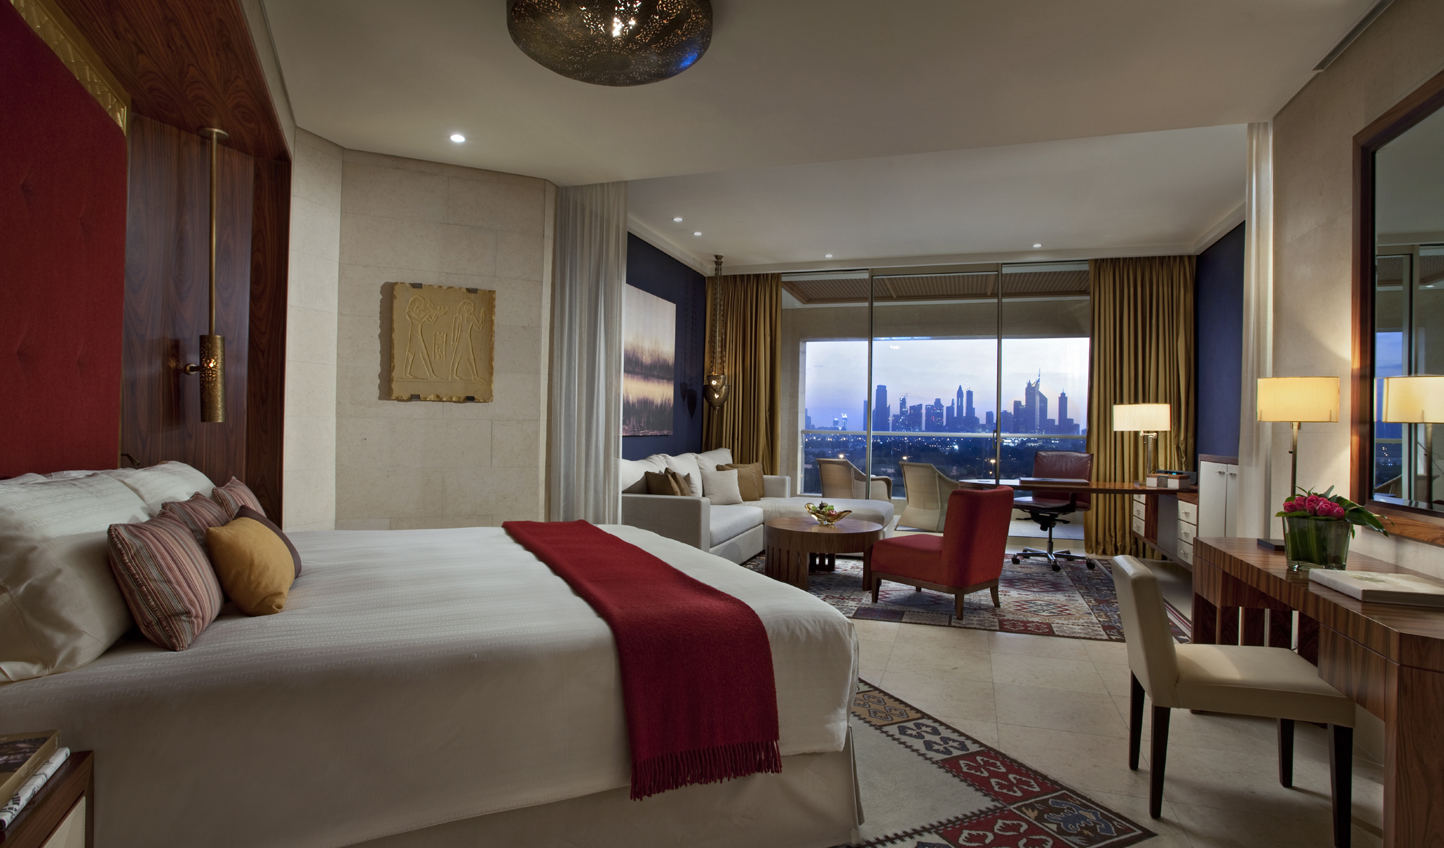 Enjoy some of Dubai's most spacious hotel rooms